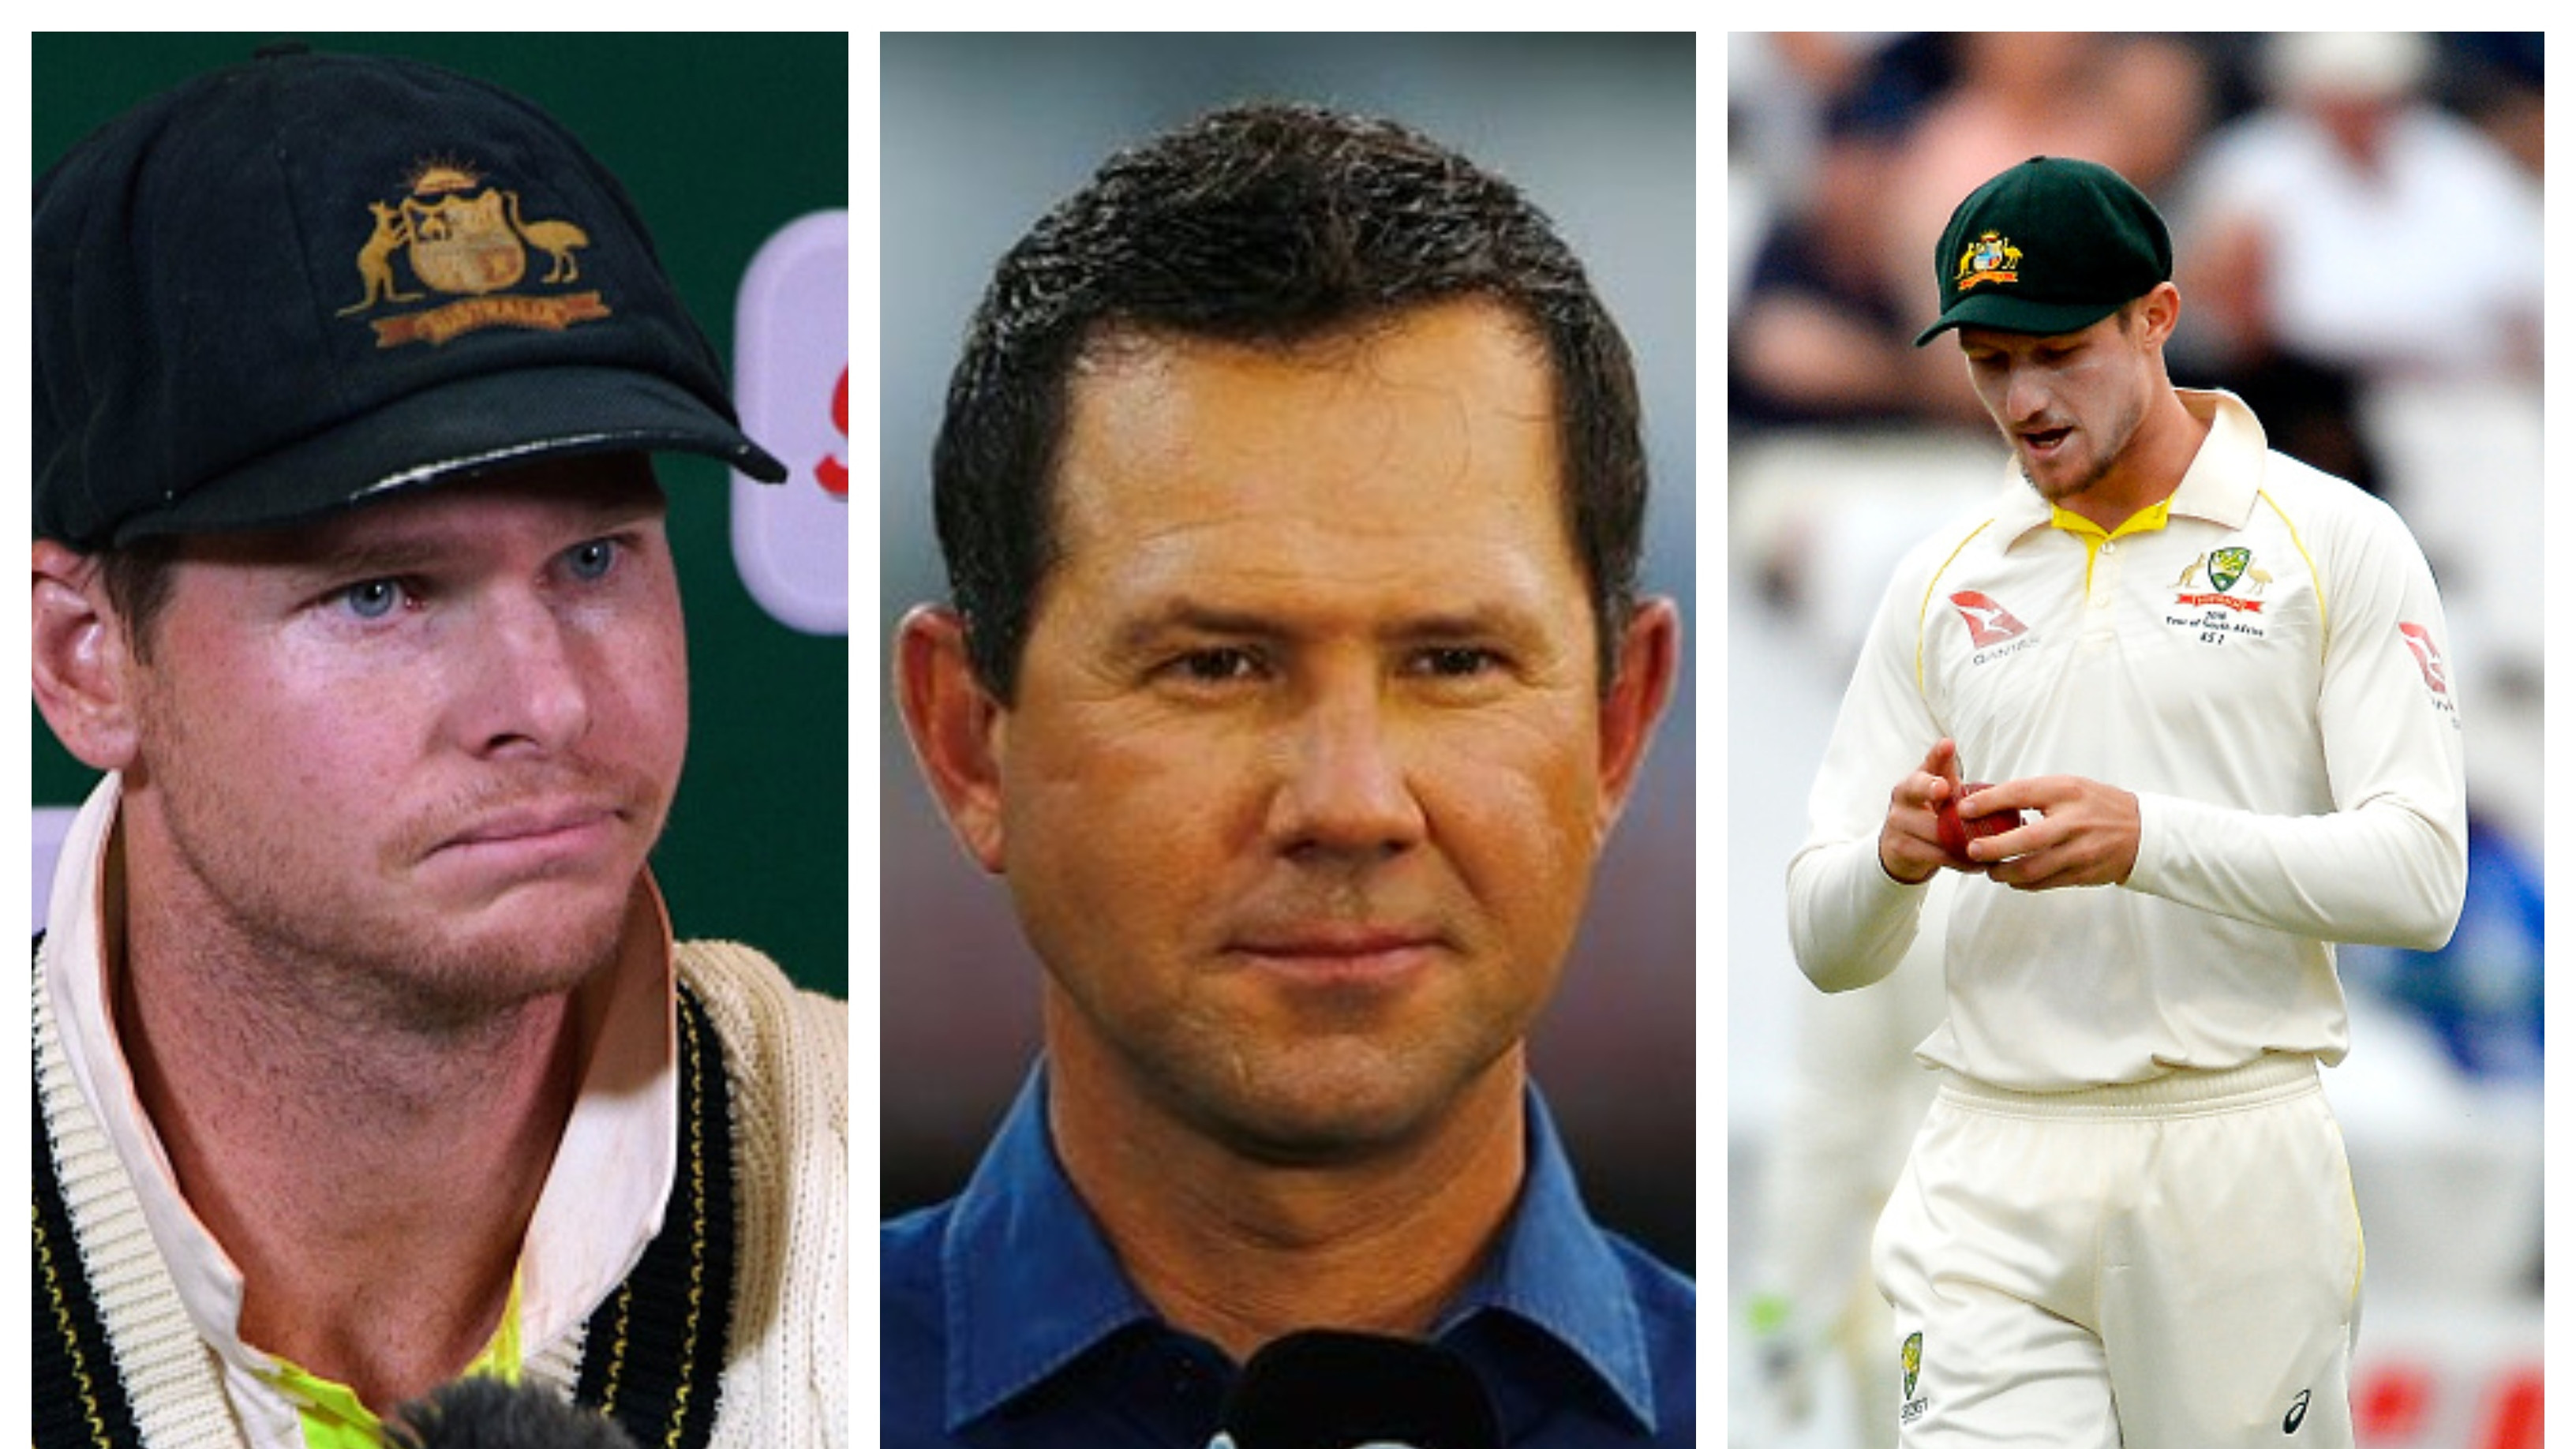 Shocked by the revelations Smith and Bancroft have made, says Ricky Ponting